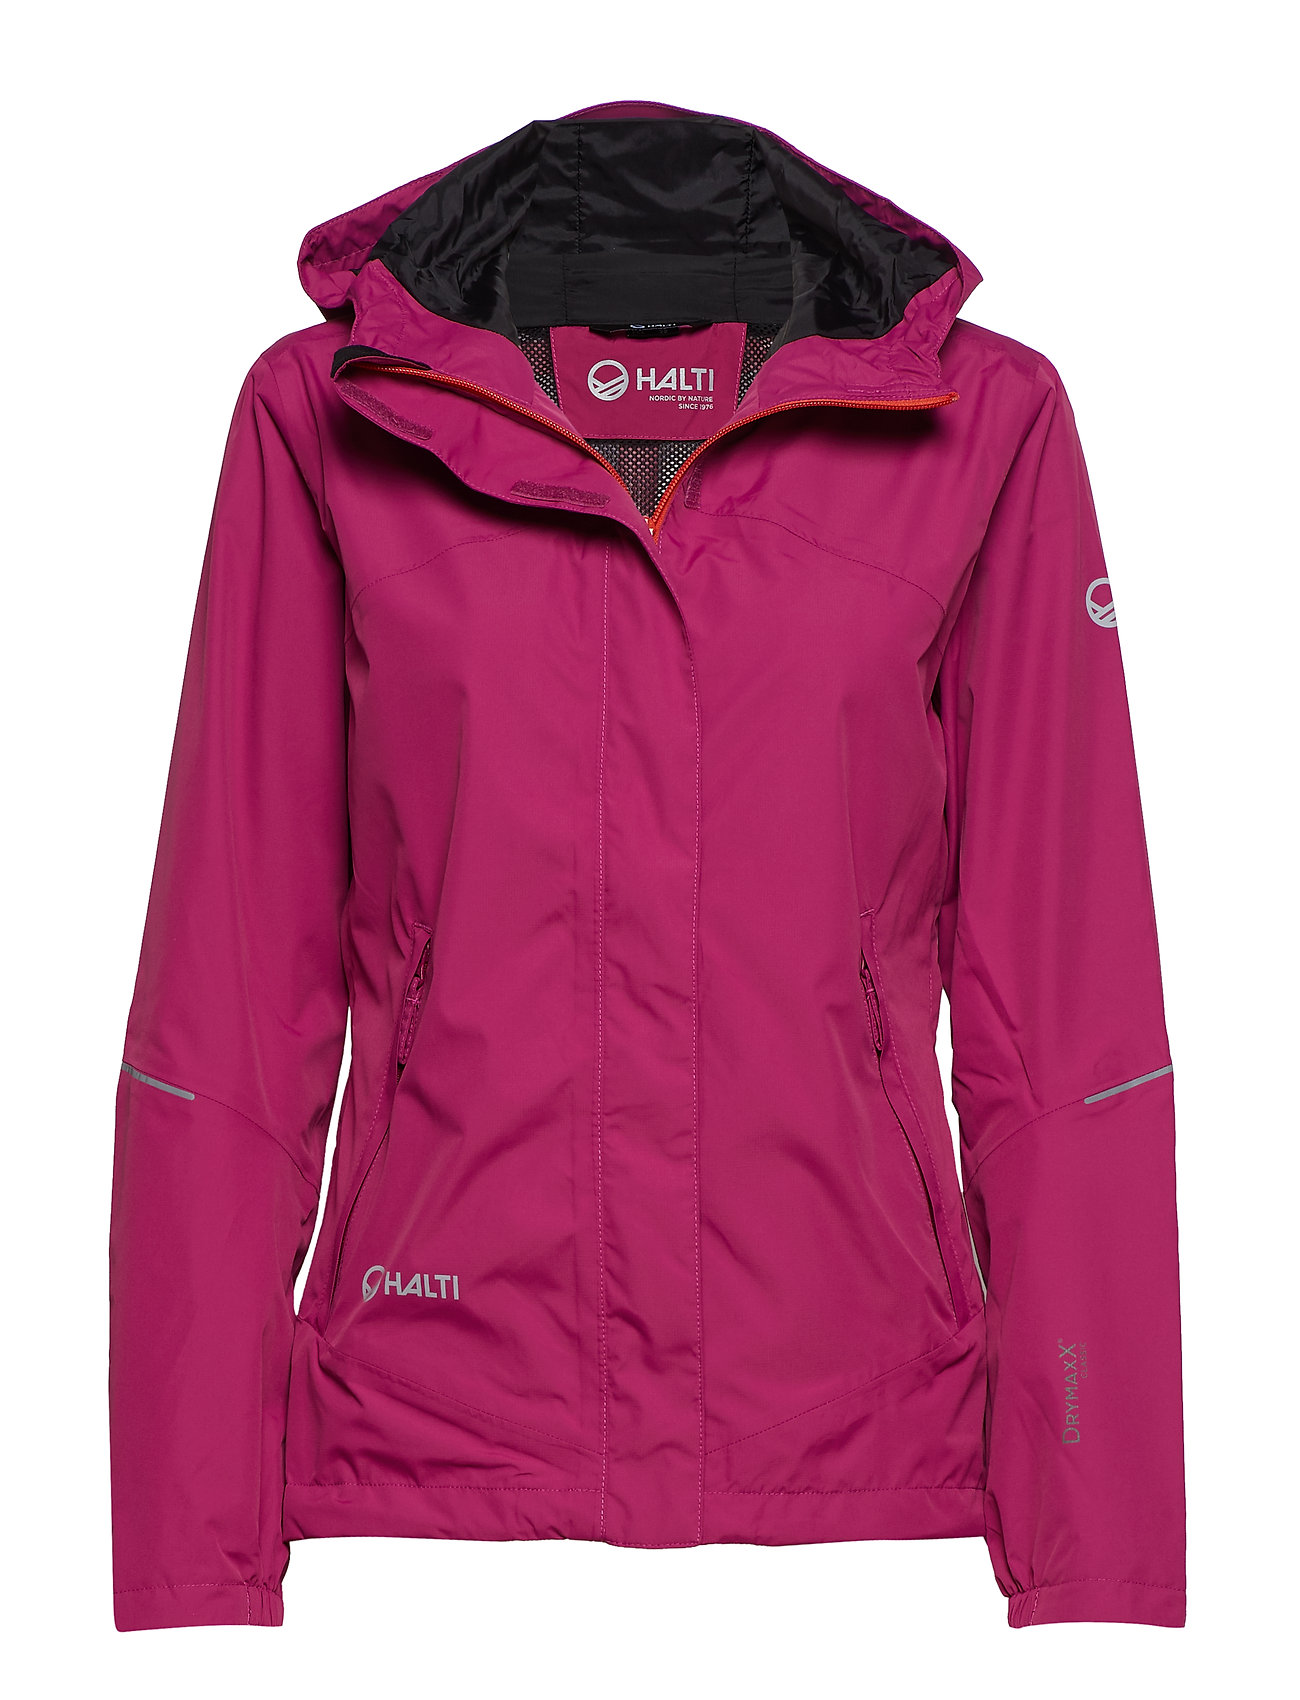 Halti Caima Women's DX Shell Jacket - WILD ASTER PURPLE